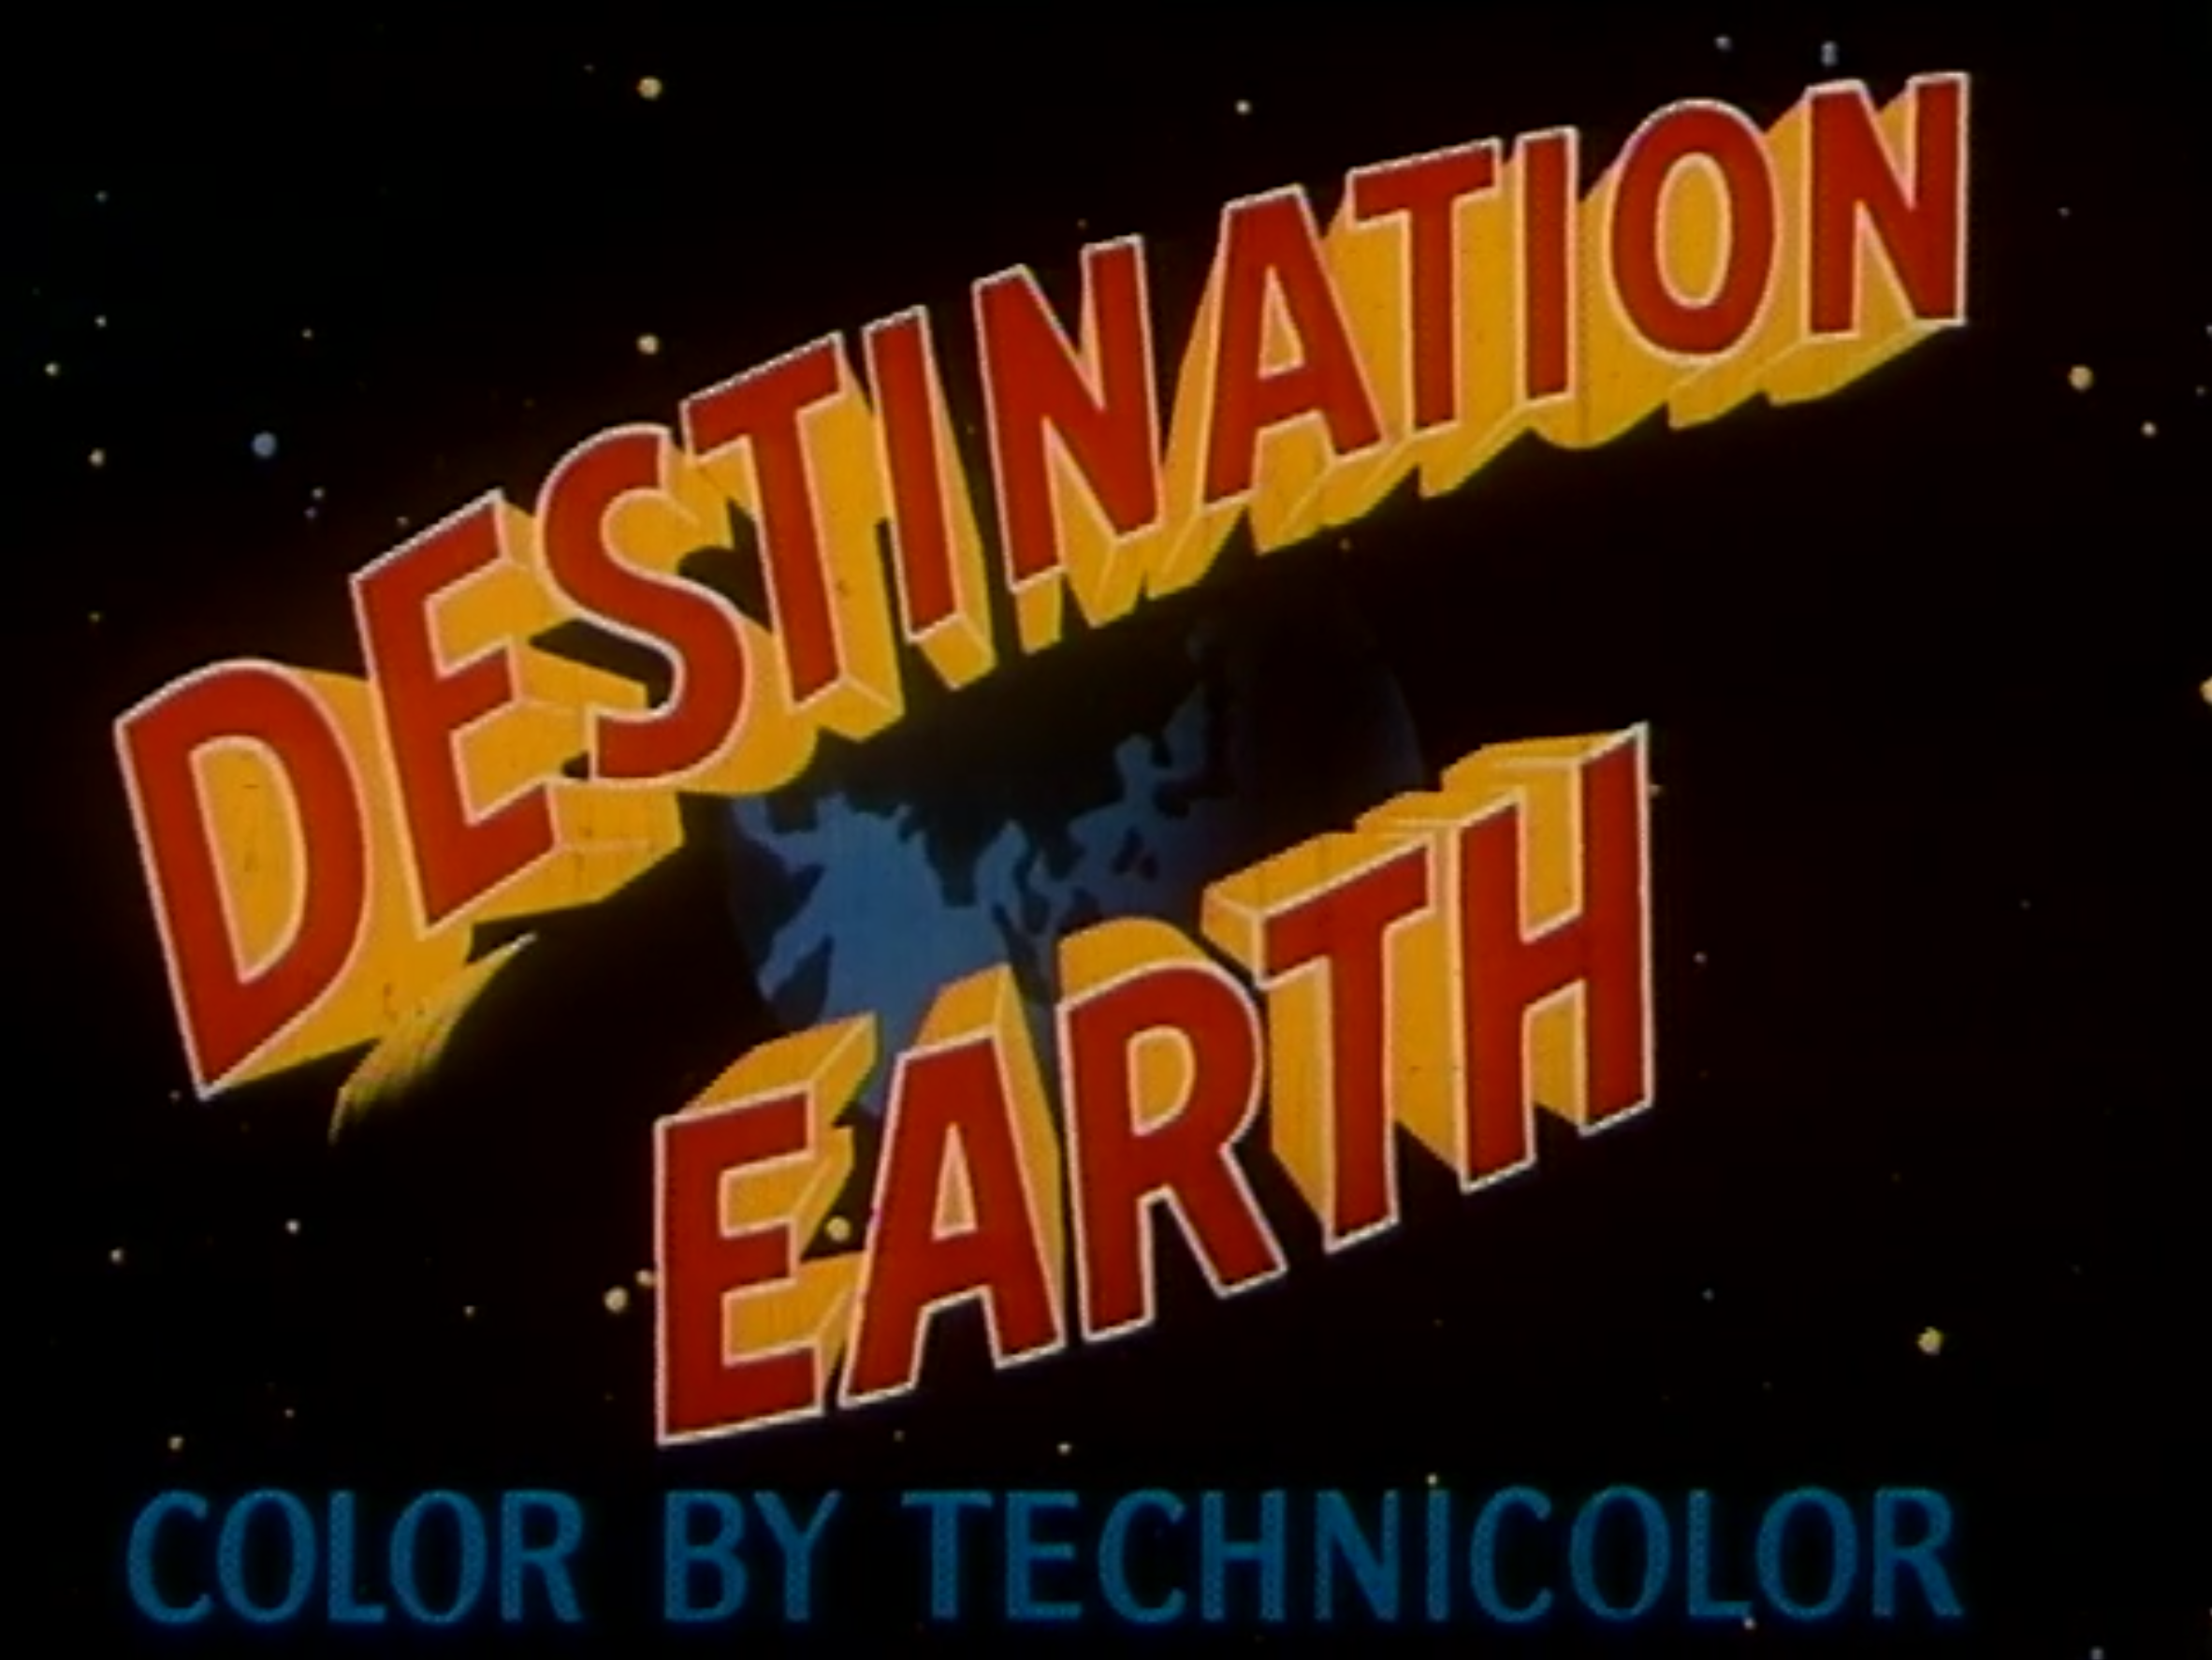 Destination Earth (1956)